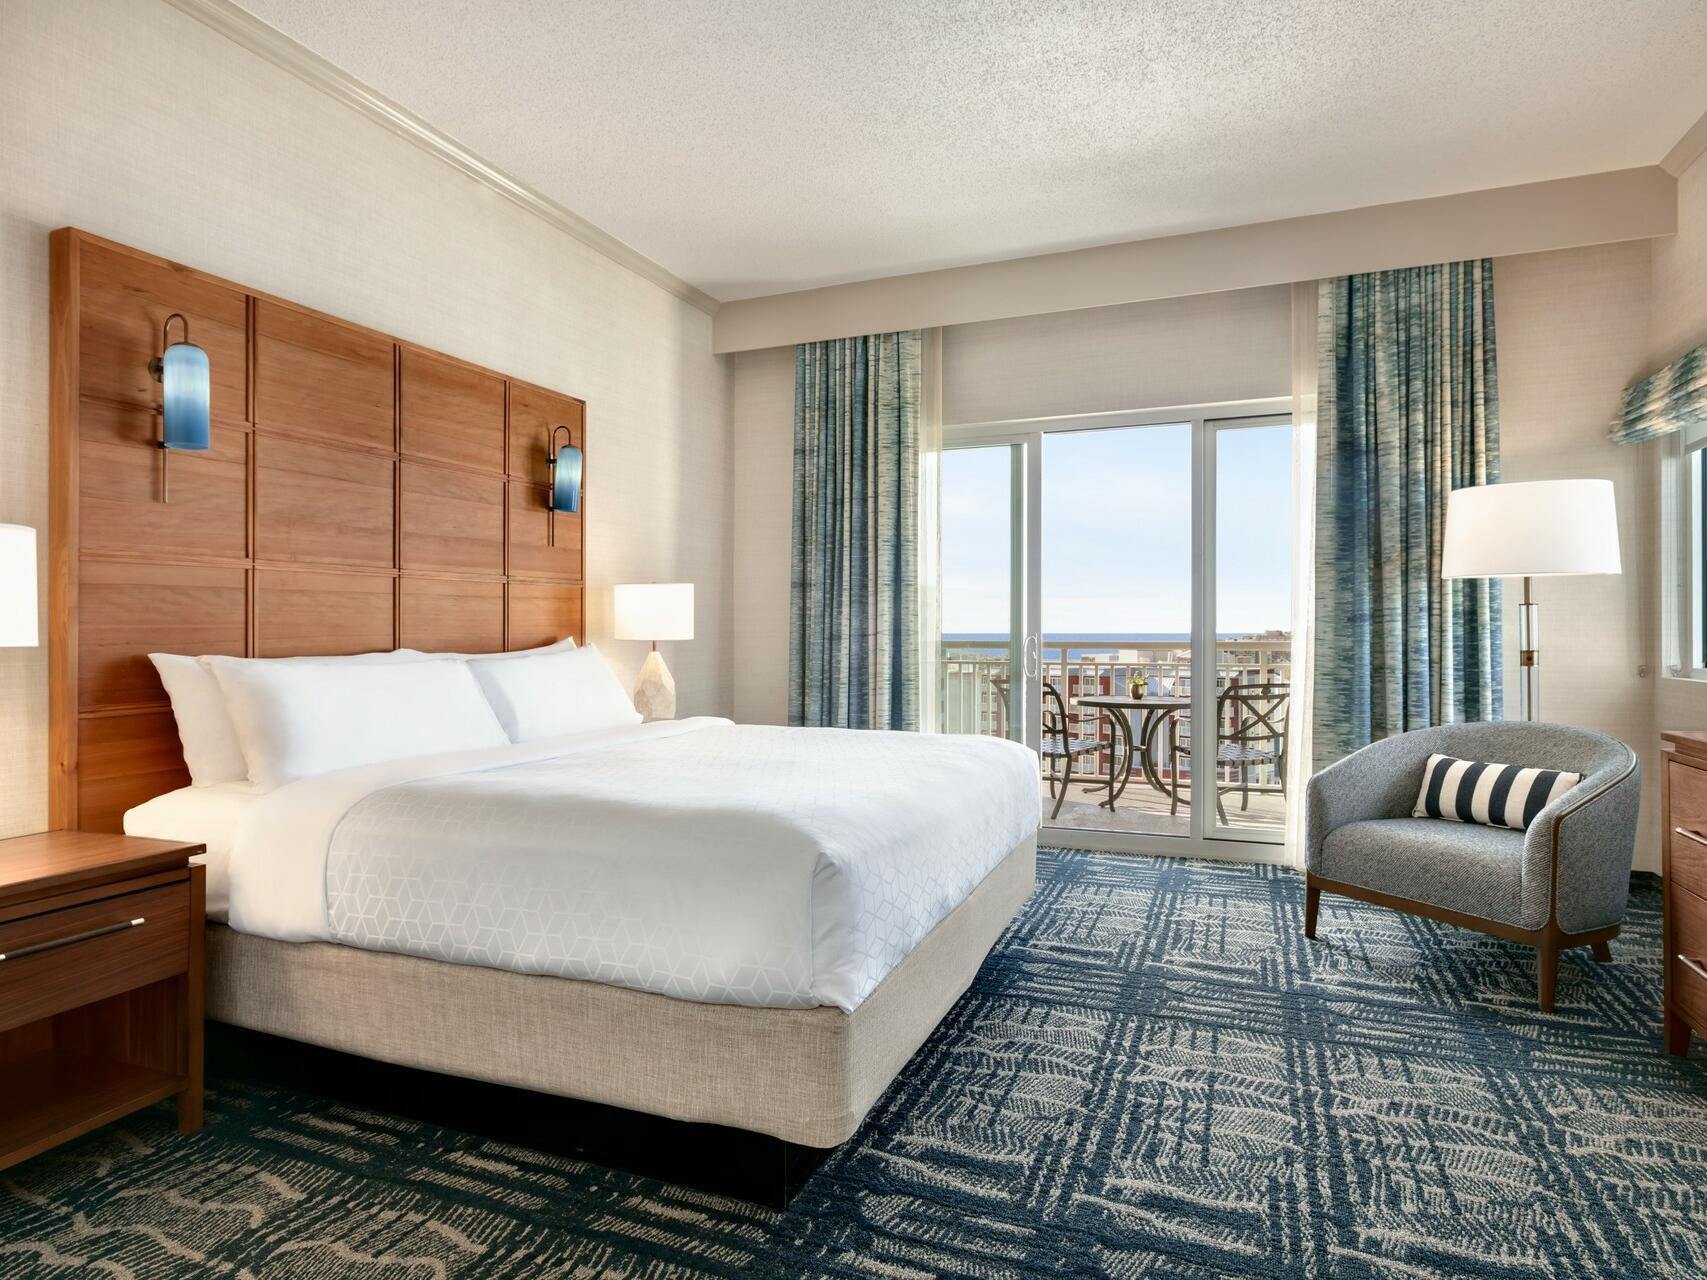 One King Bed in Southern View Suite at Holiday Inn Hotel